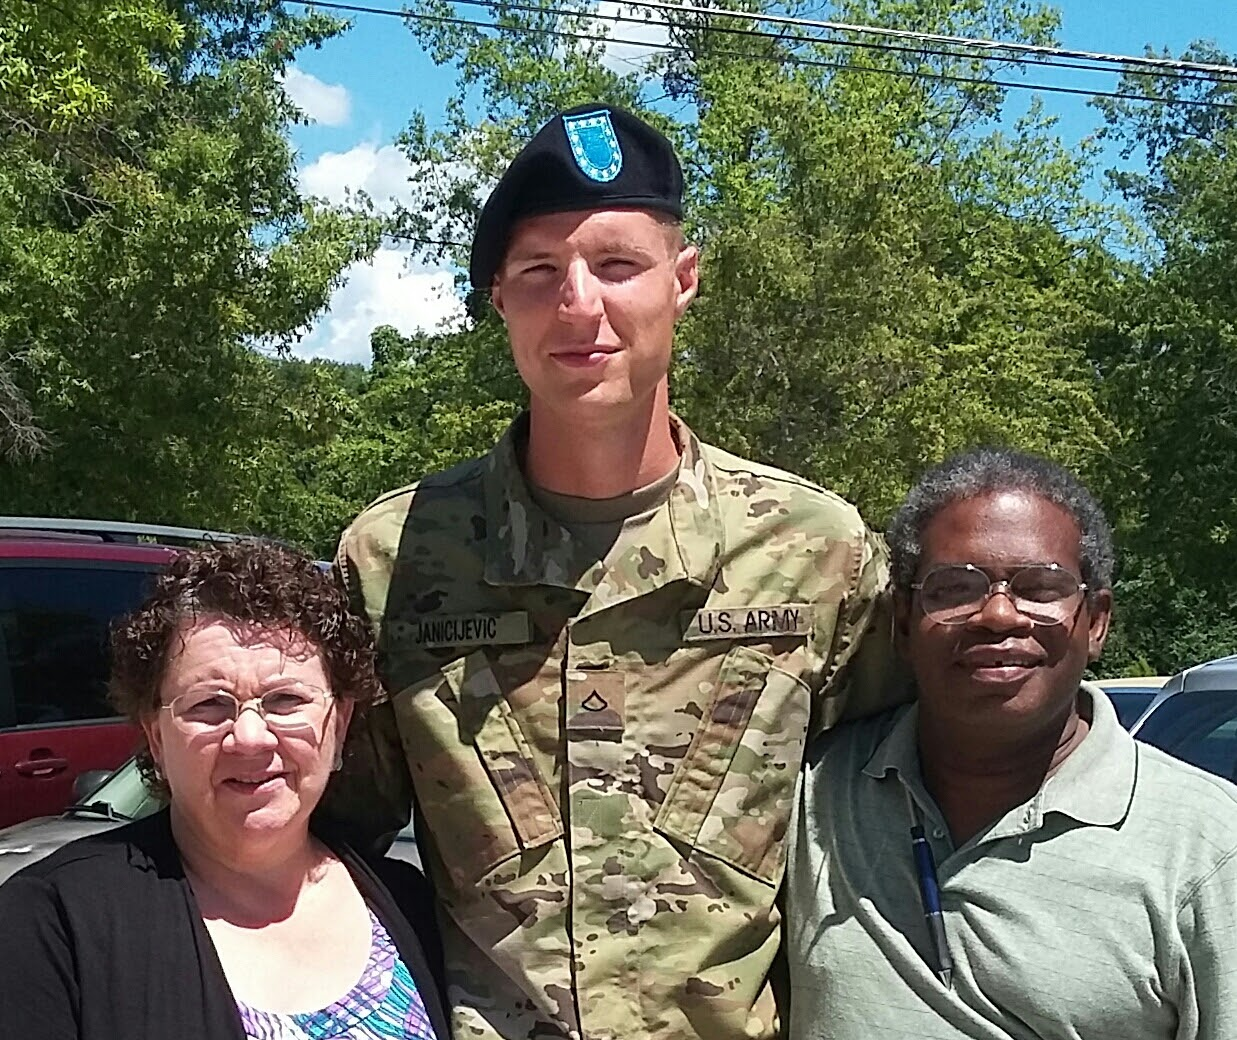 Kathleen Jacob, left, and Joseph Jacob, right, served as legal guardians for Spc. Nemanja Janicijevic when he first came to the U.S. to play basketball in Maryland as a high school freshman. Janicijevic was stuck at Fort Lee for 11 months after AIT, until his death last week. (Courtesy photo)